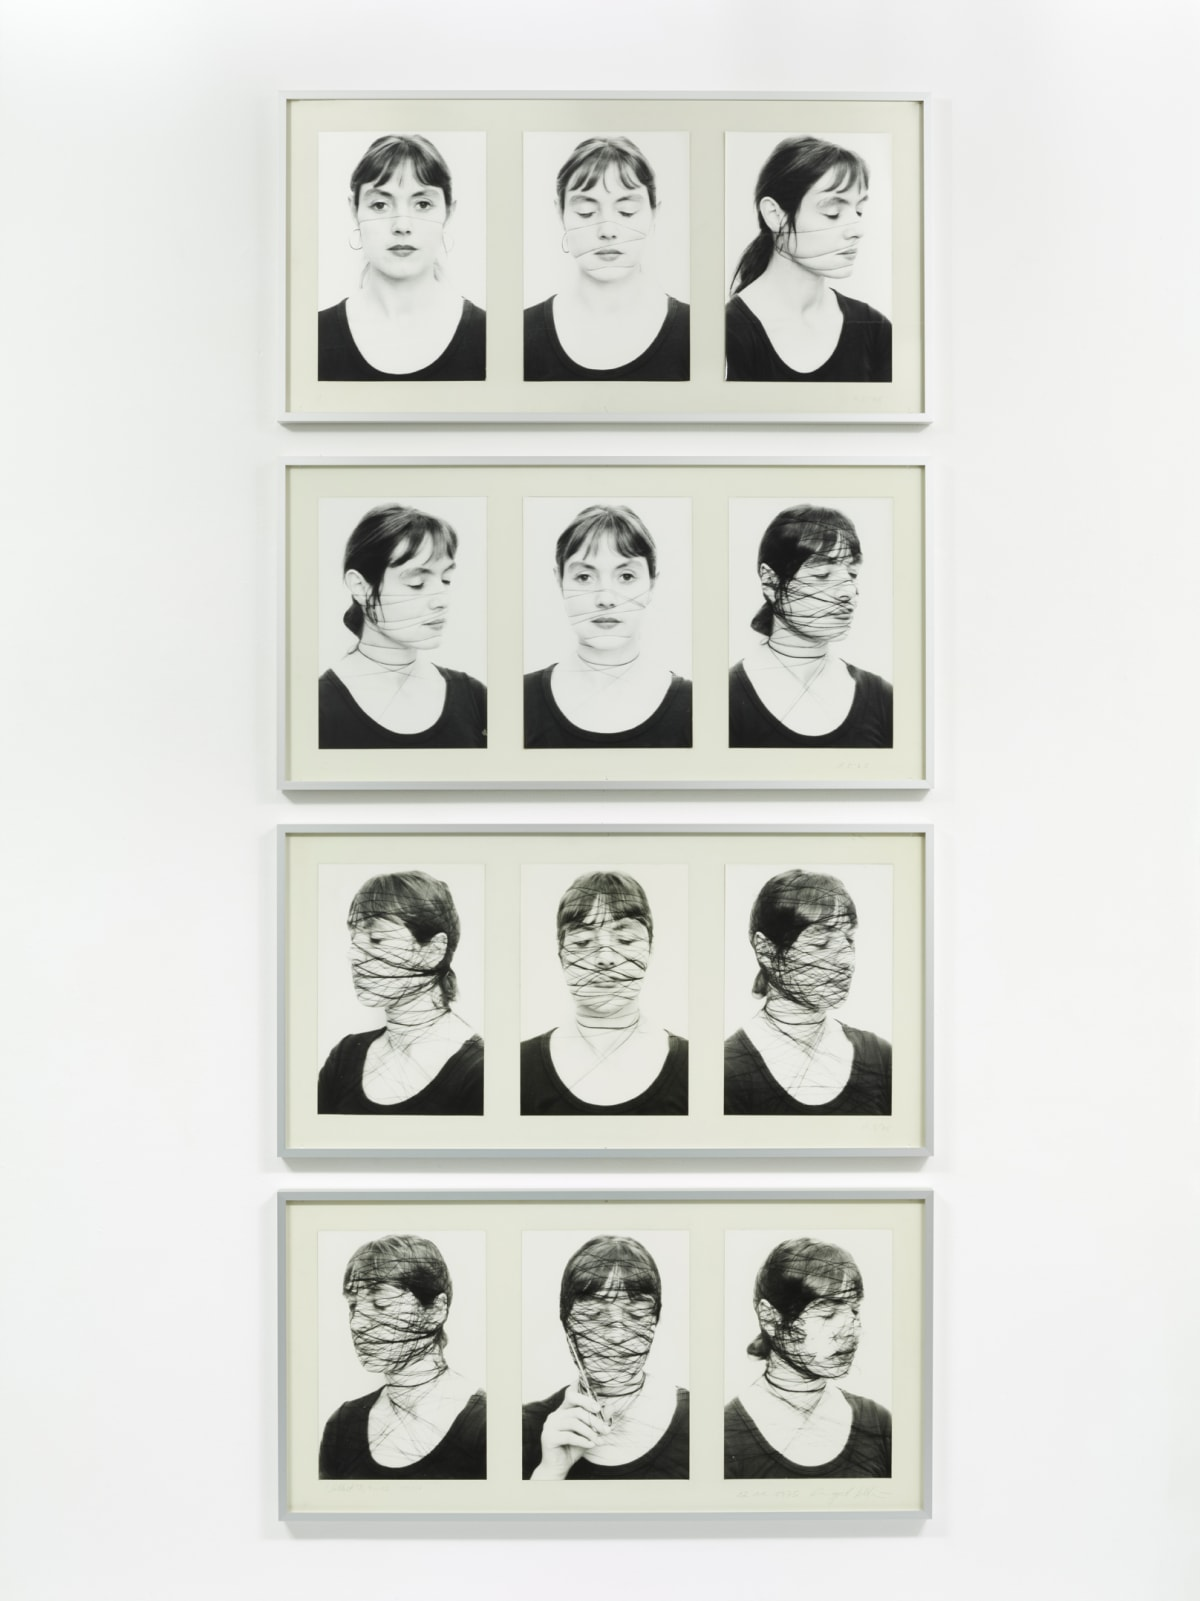 Annegret SOLTAU Selbst II, 1-12 (Self II, 1-12), 1975 12 Black and white photographs on baryta paper, mounted on cardboard Each: 51.5 x 101.5 cm